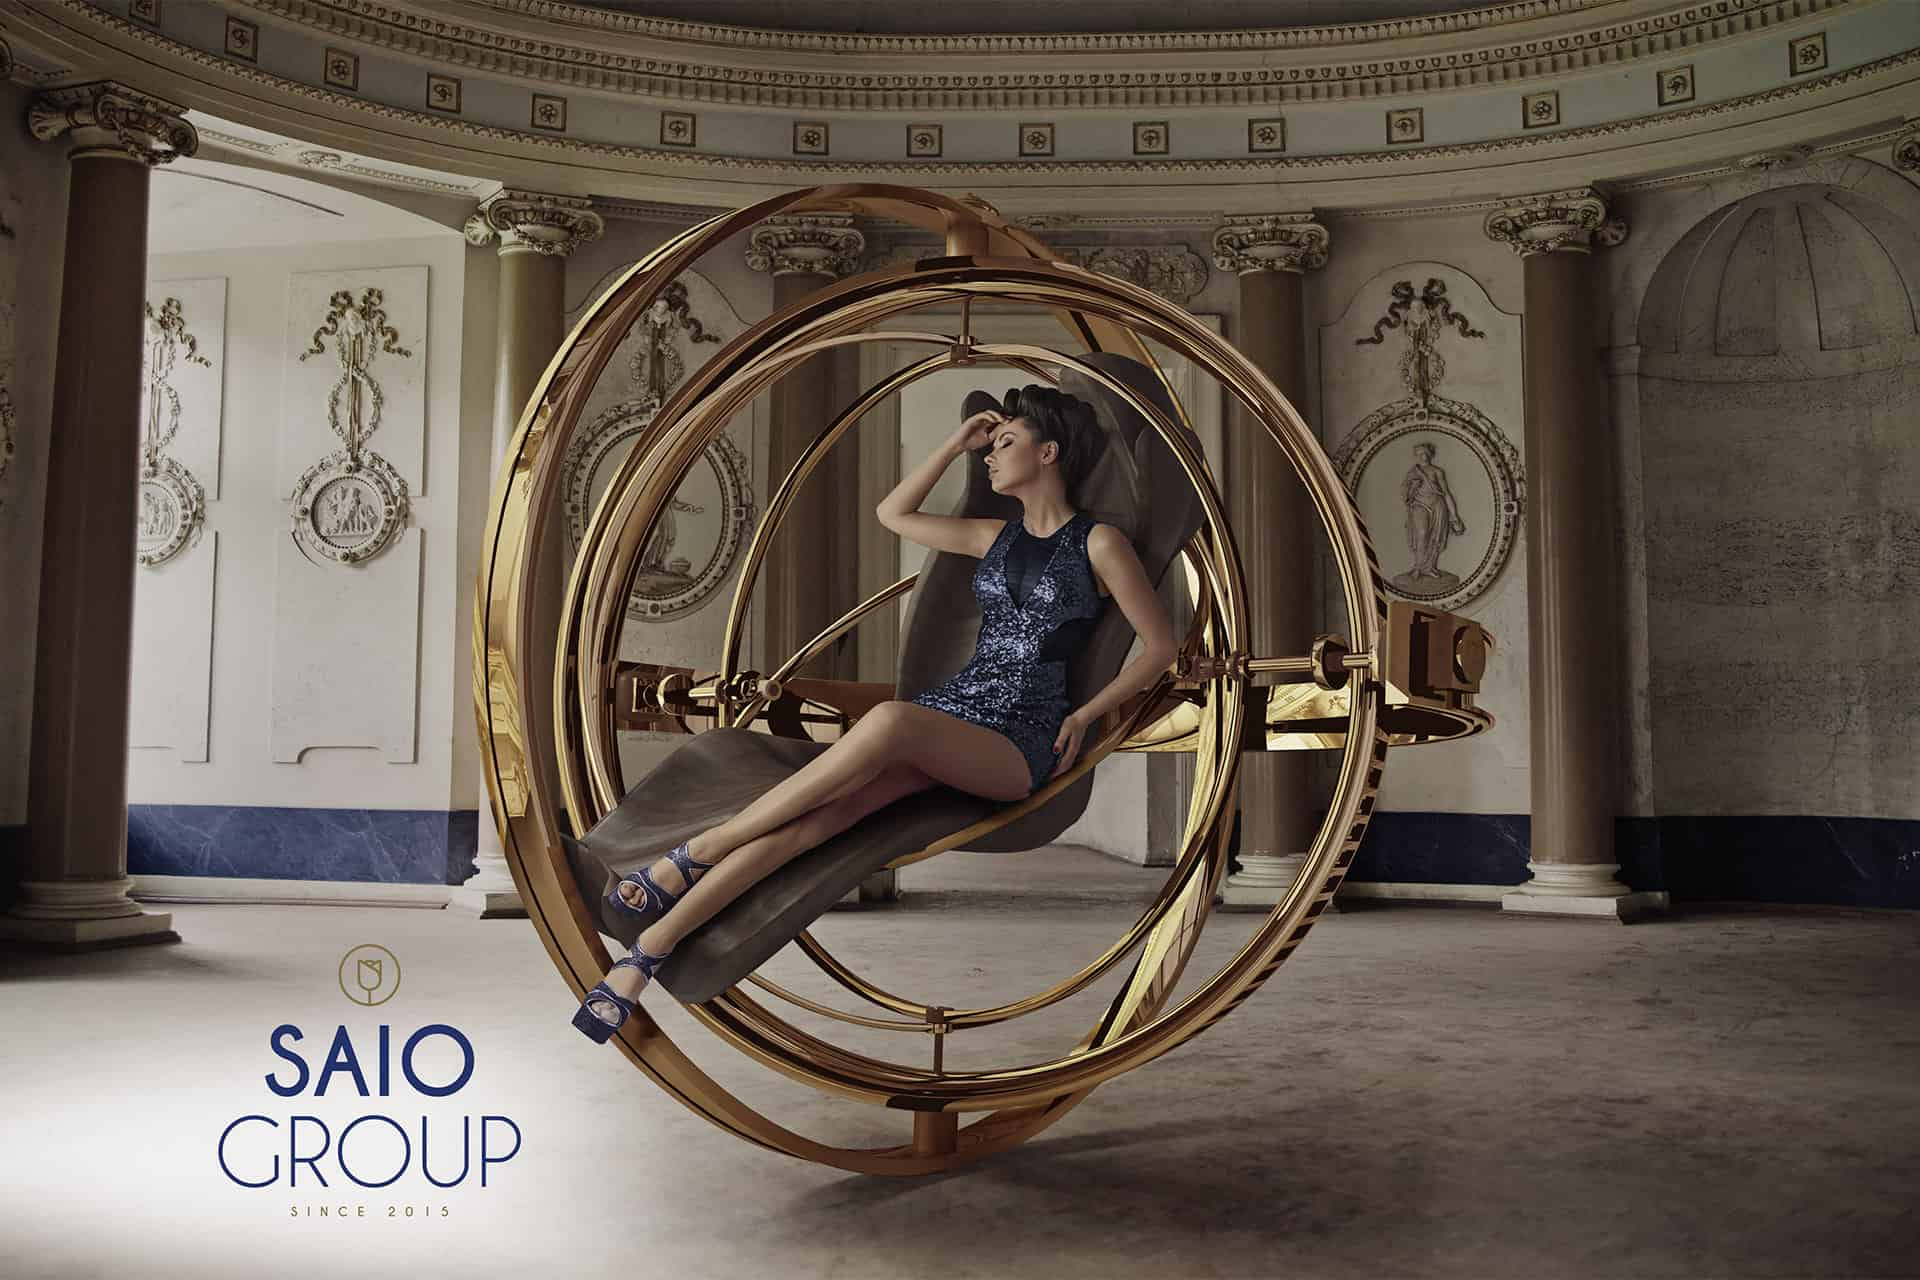 SAIO GROUP